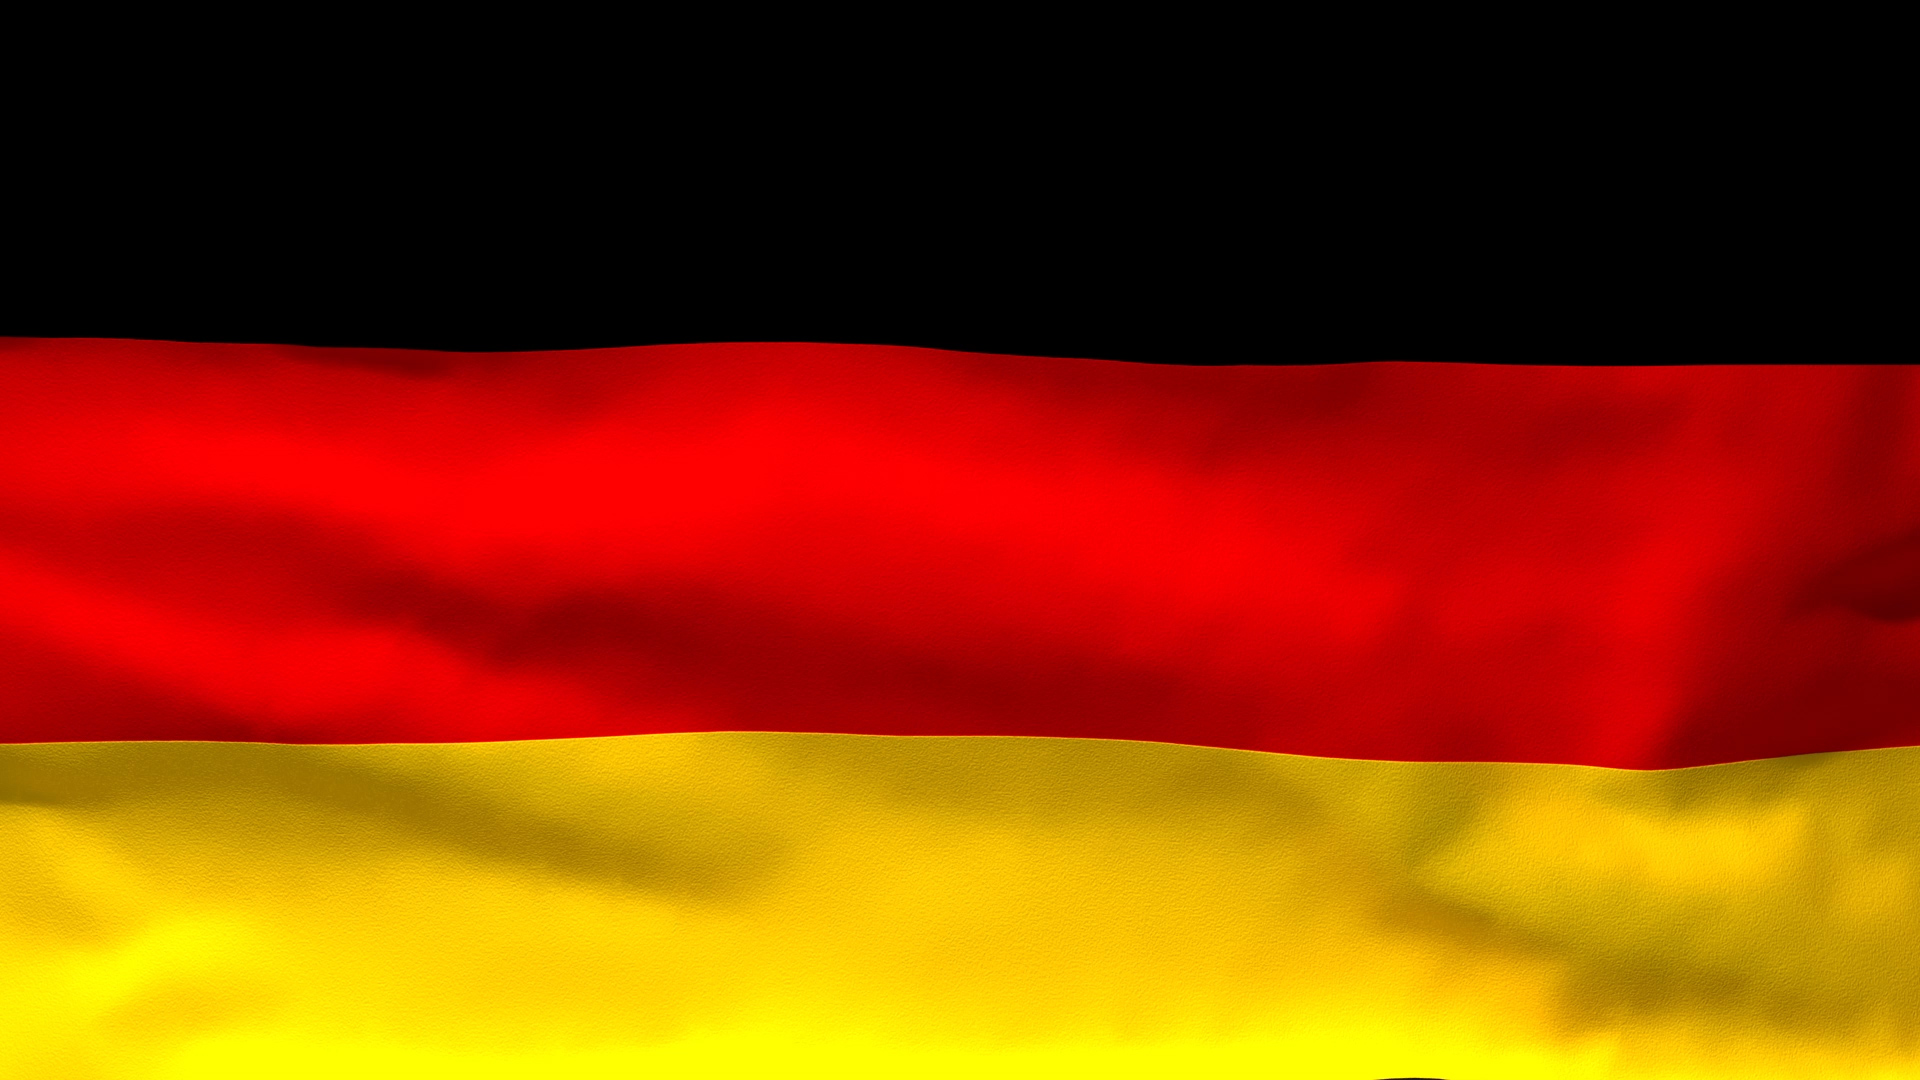 High Resolution Wallpaper   Flag Of Germany 1920x1080 px